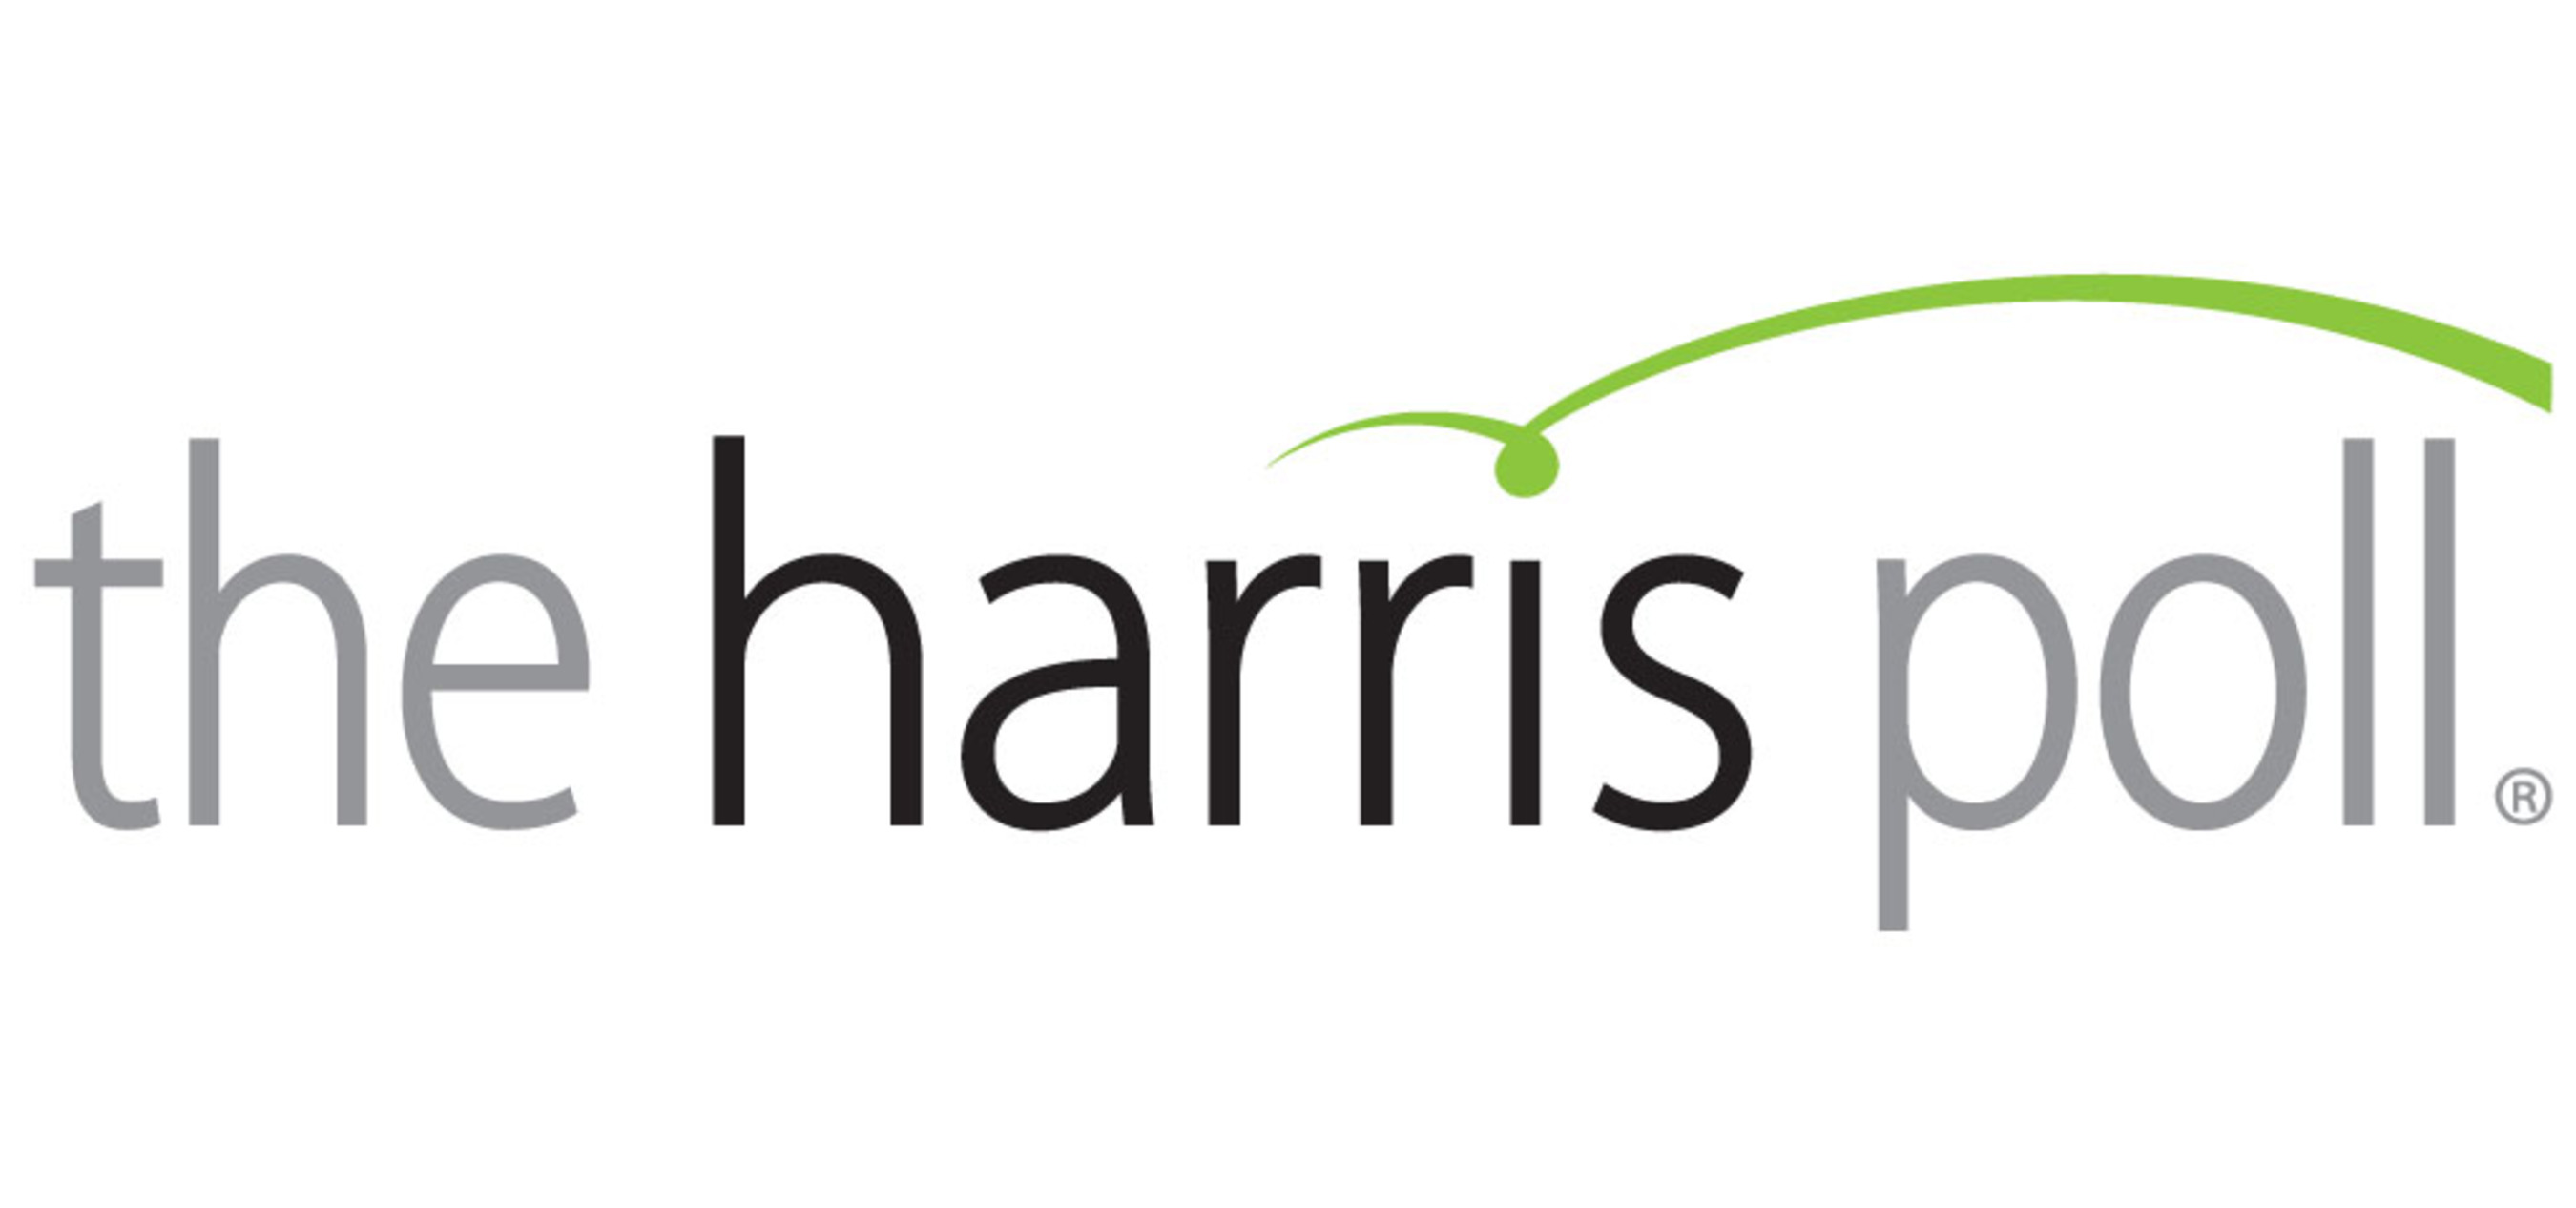 TV Networks Hold On To Brand Equity Lead In New Harris Poll